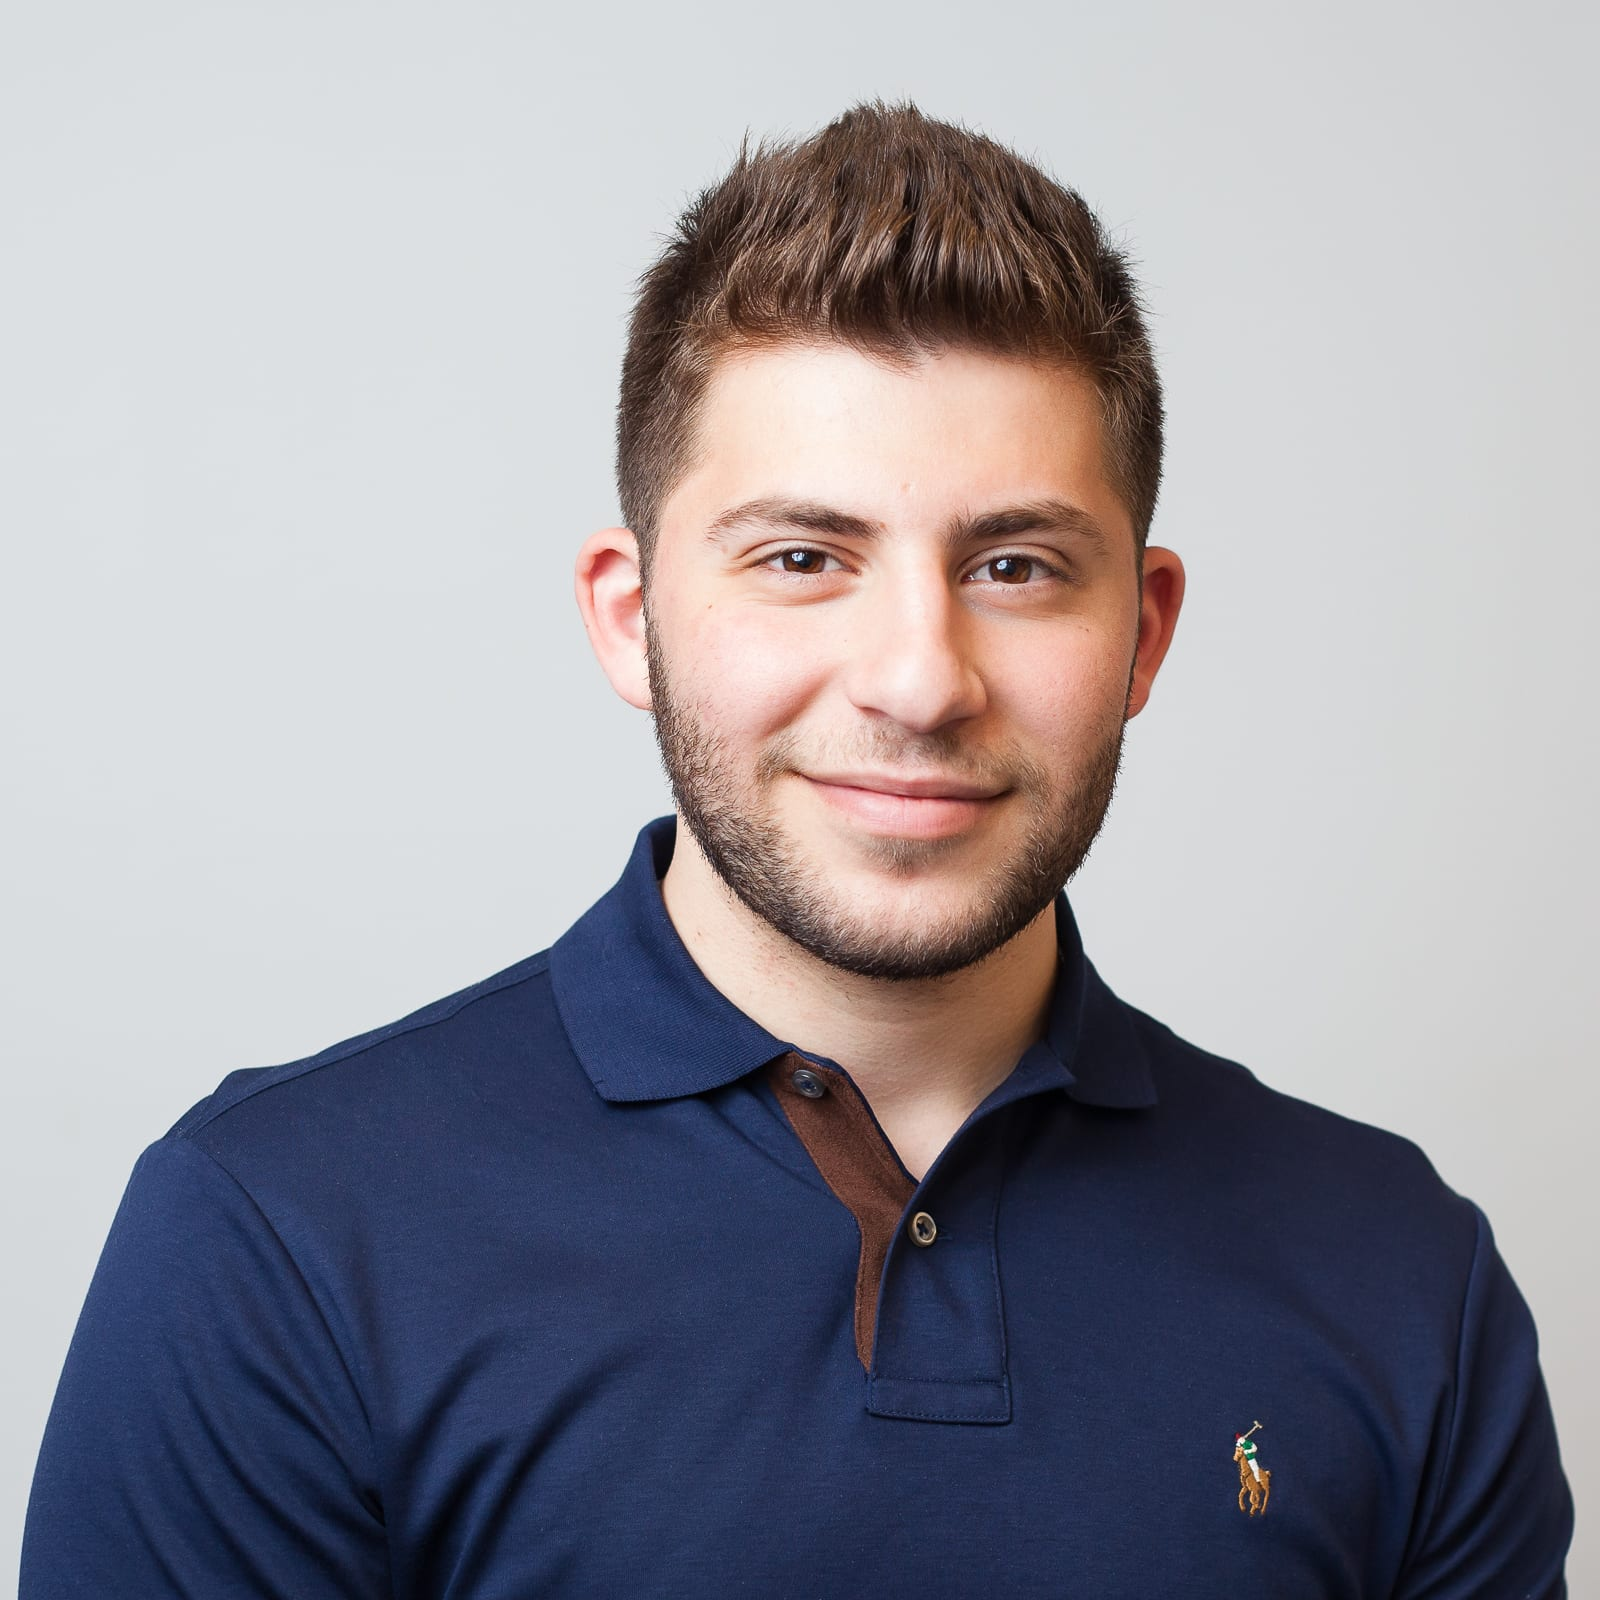 Emanuel Kamali, Data Engineer